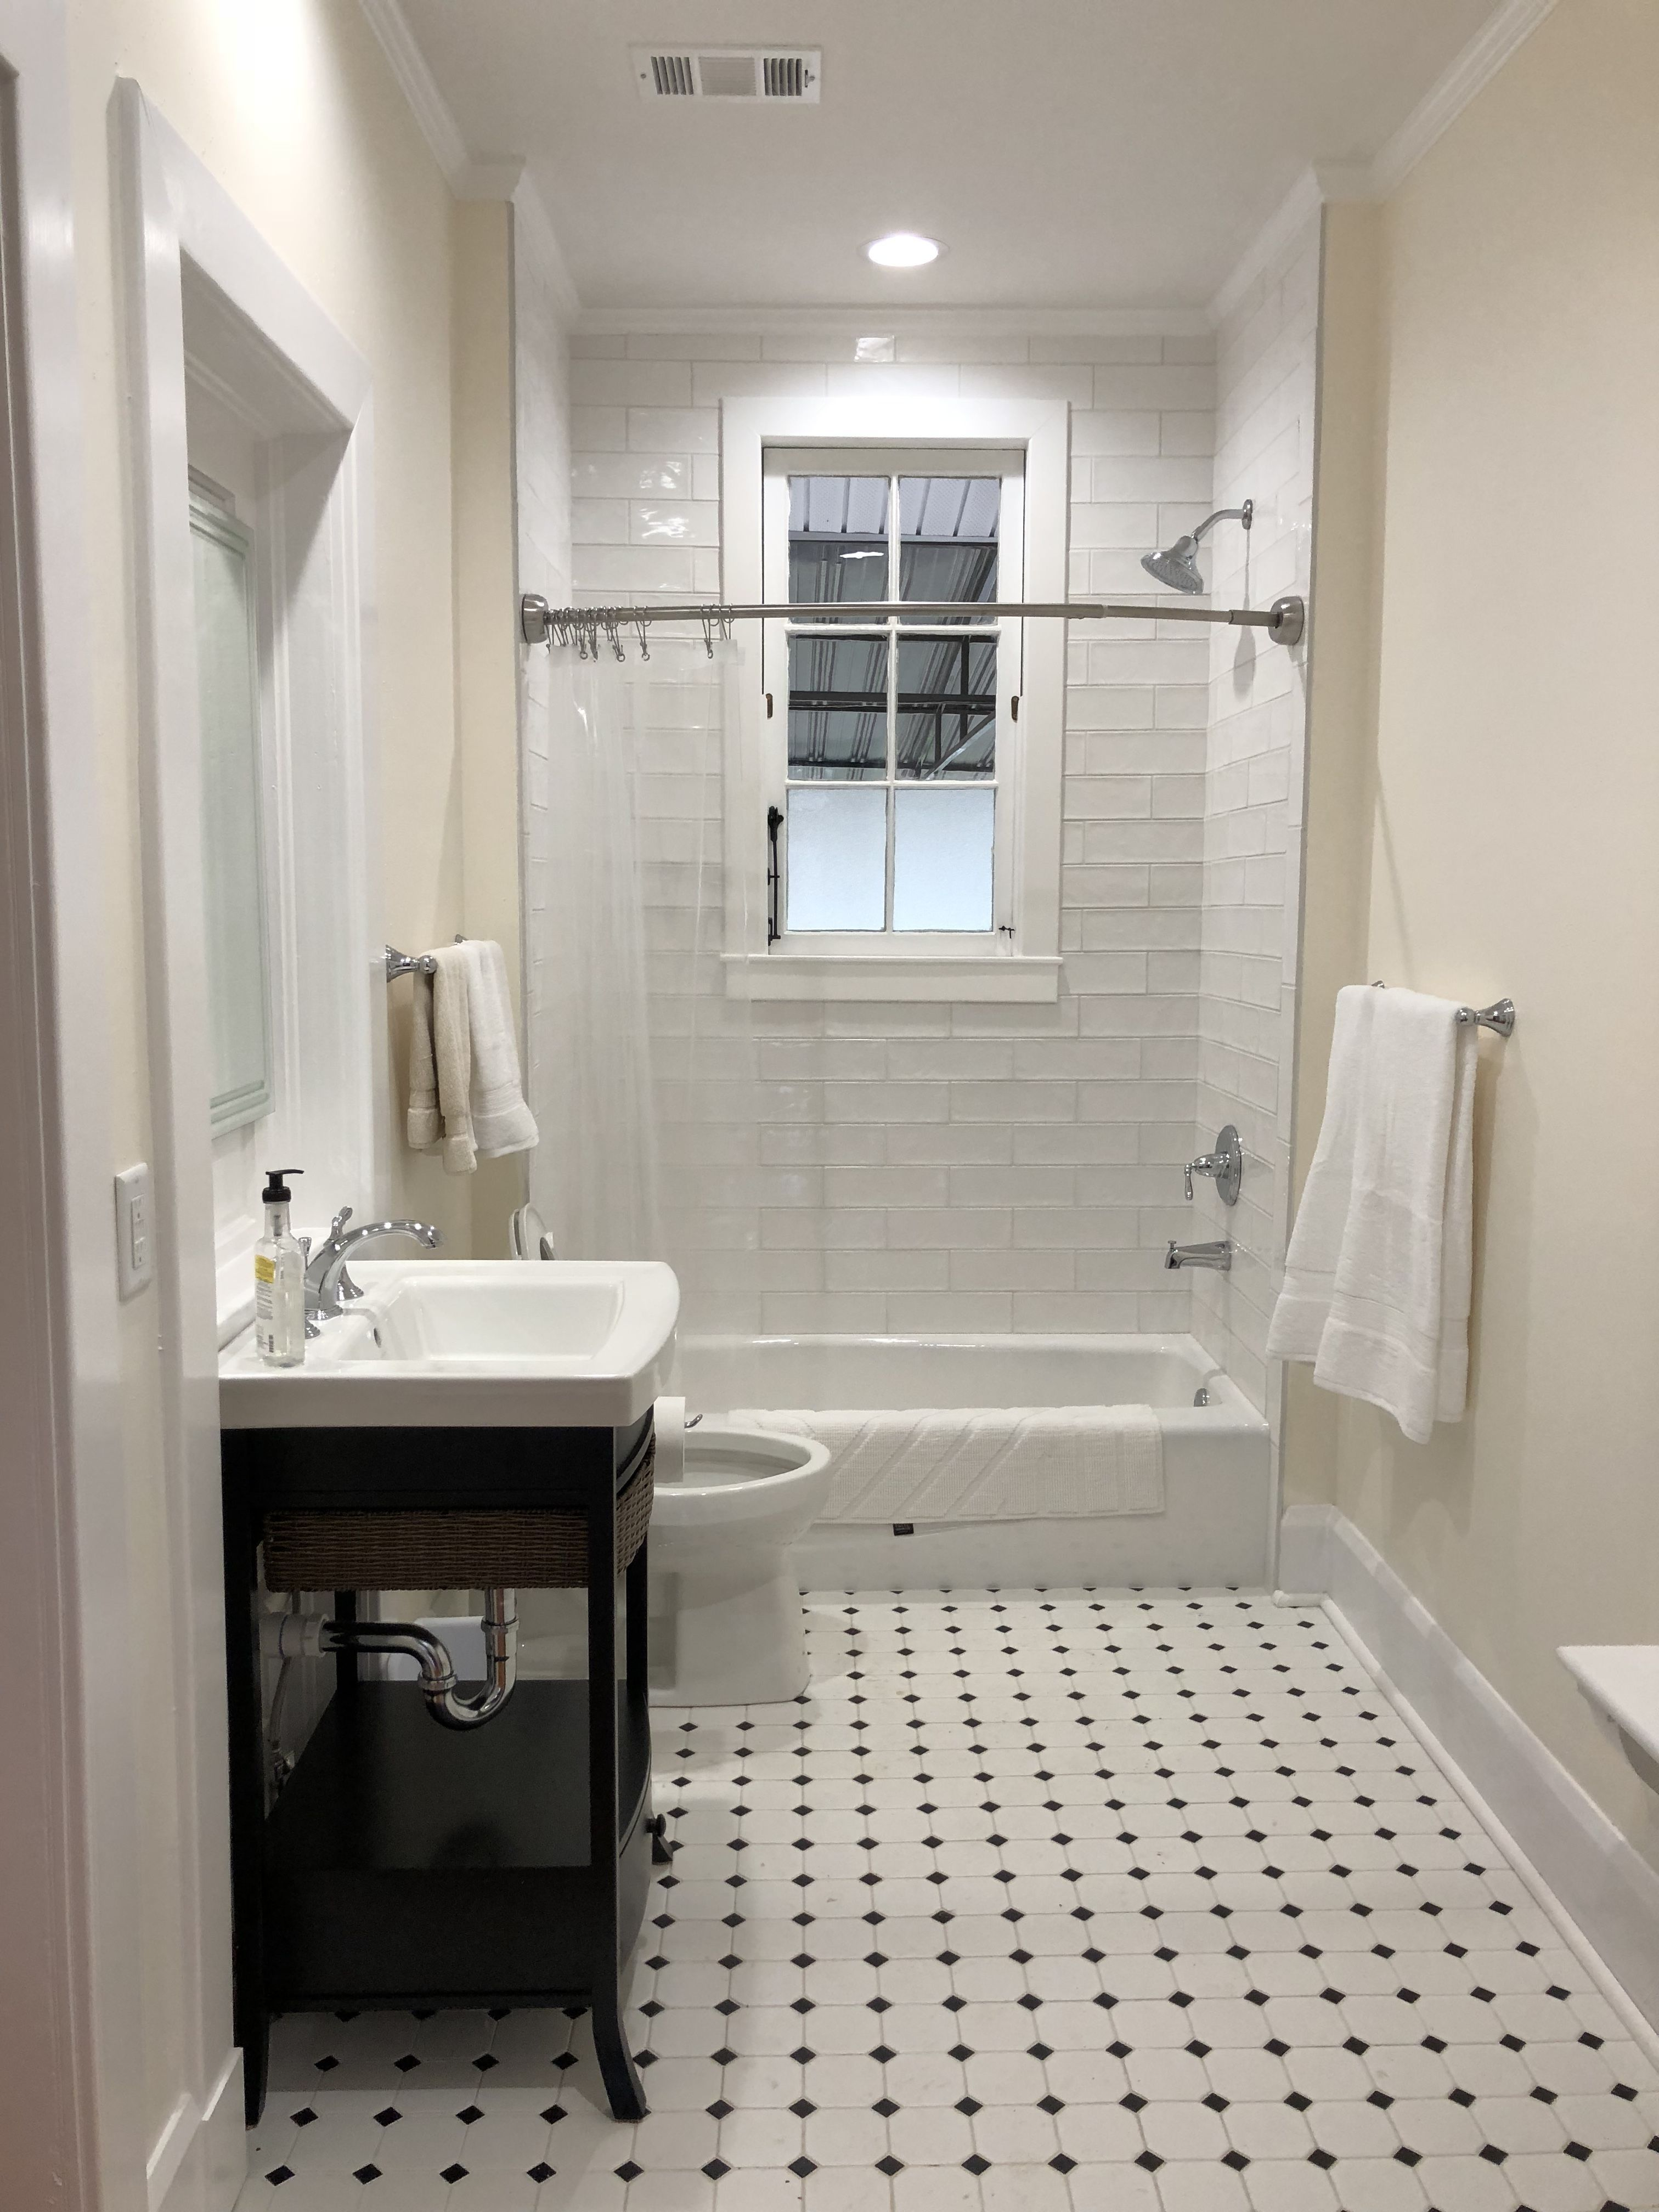 Cool Bathroom Concepts - May, 2018 | Bathroom Design Ideas ... on Amazing Small Bathrooms  id=13853